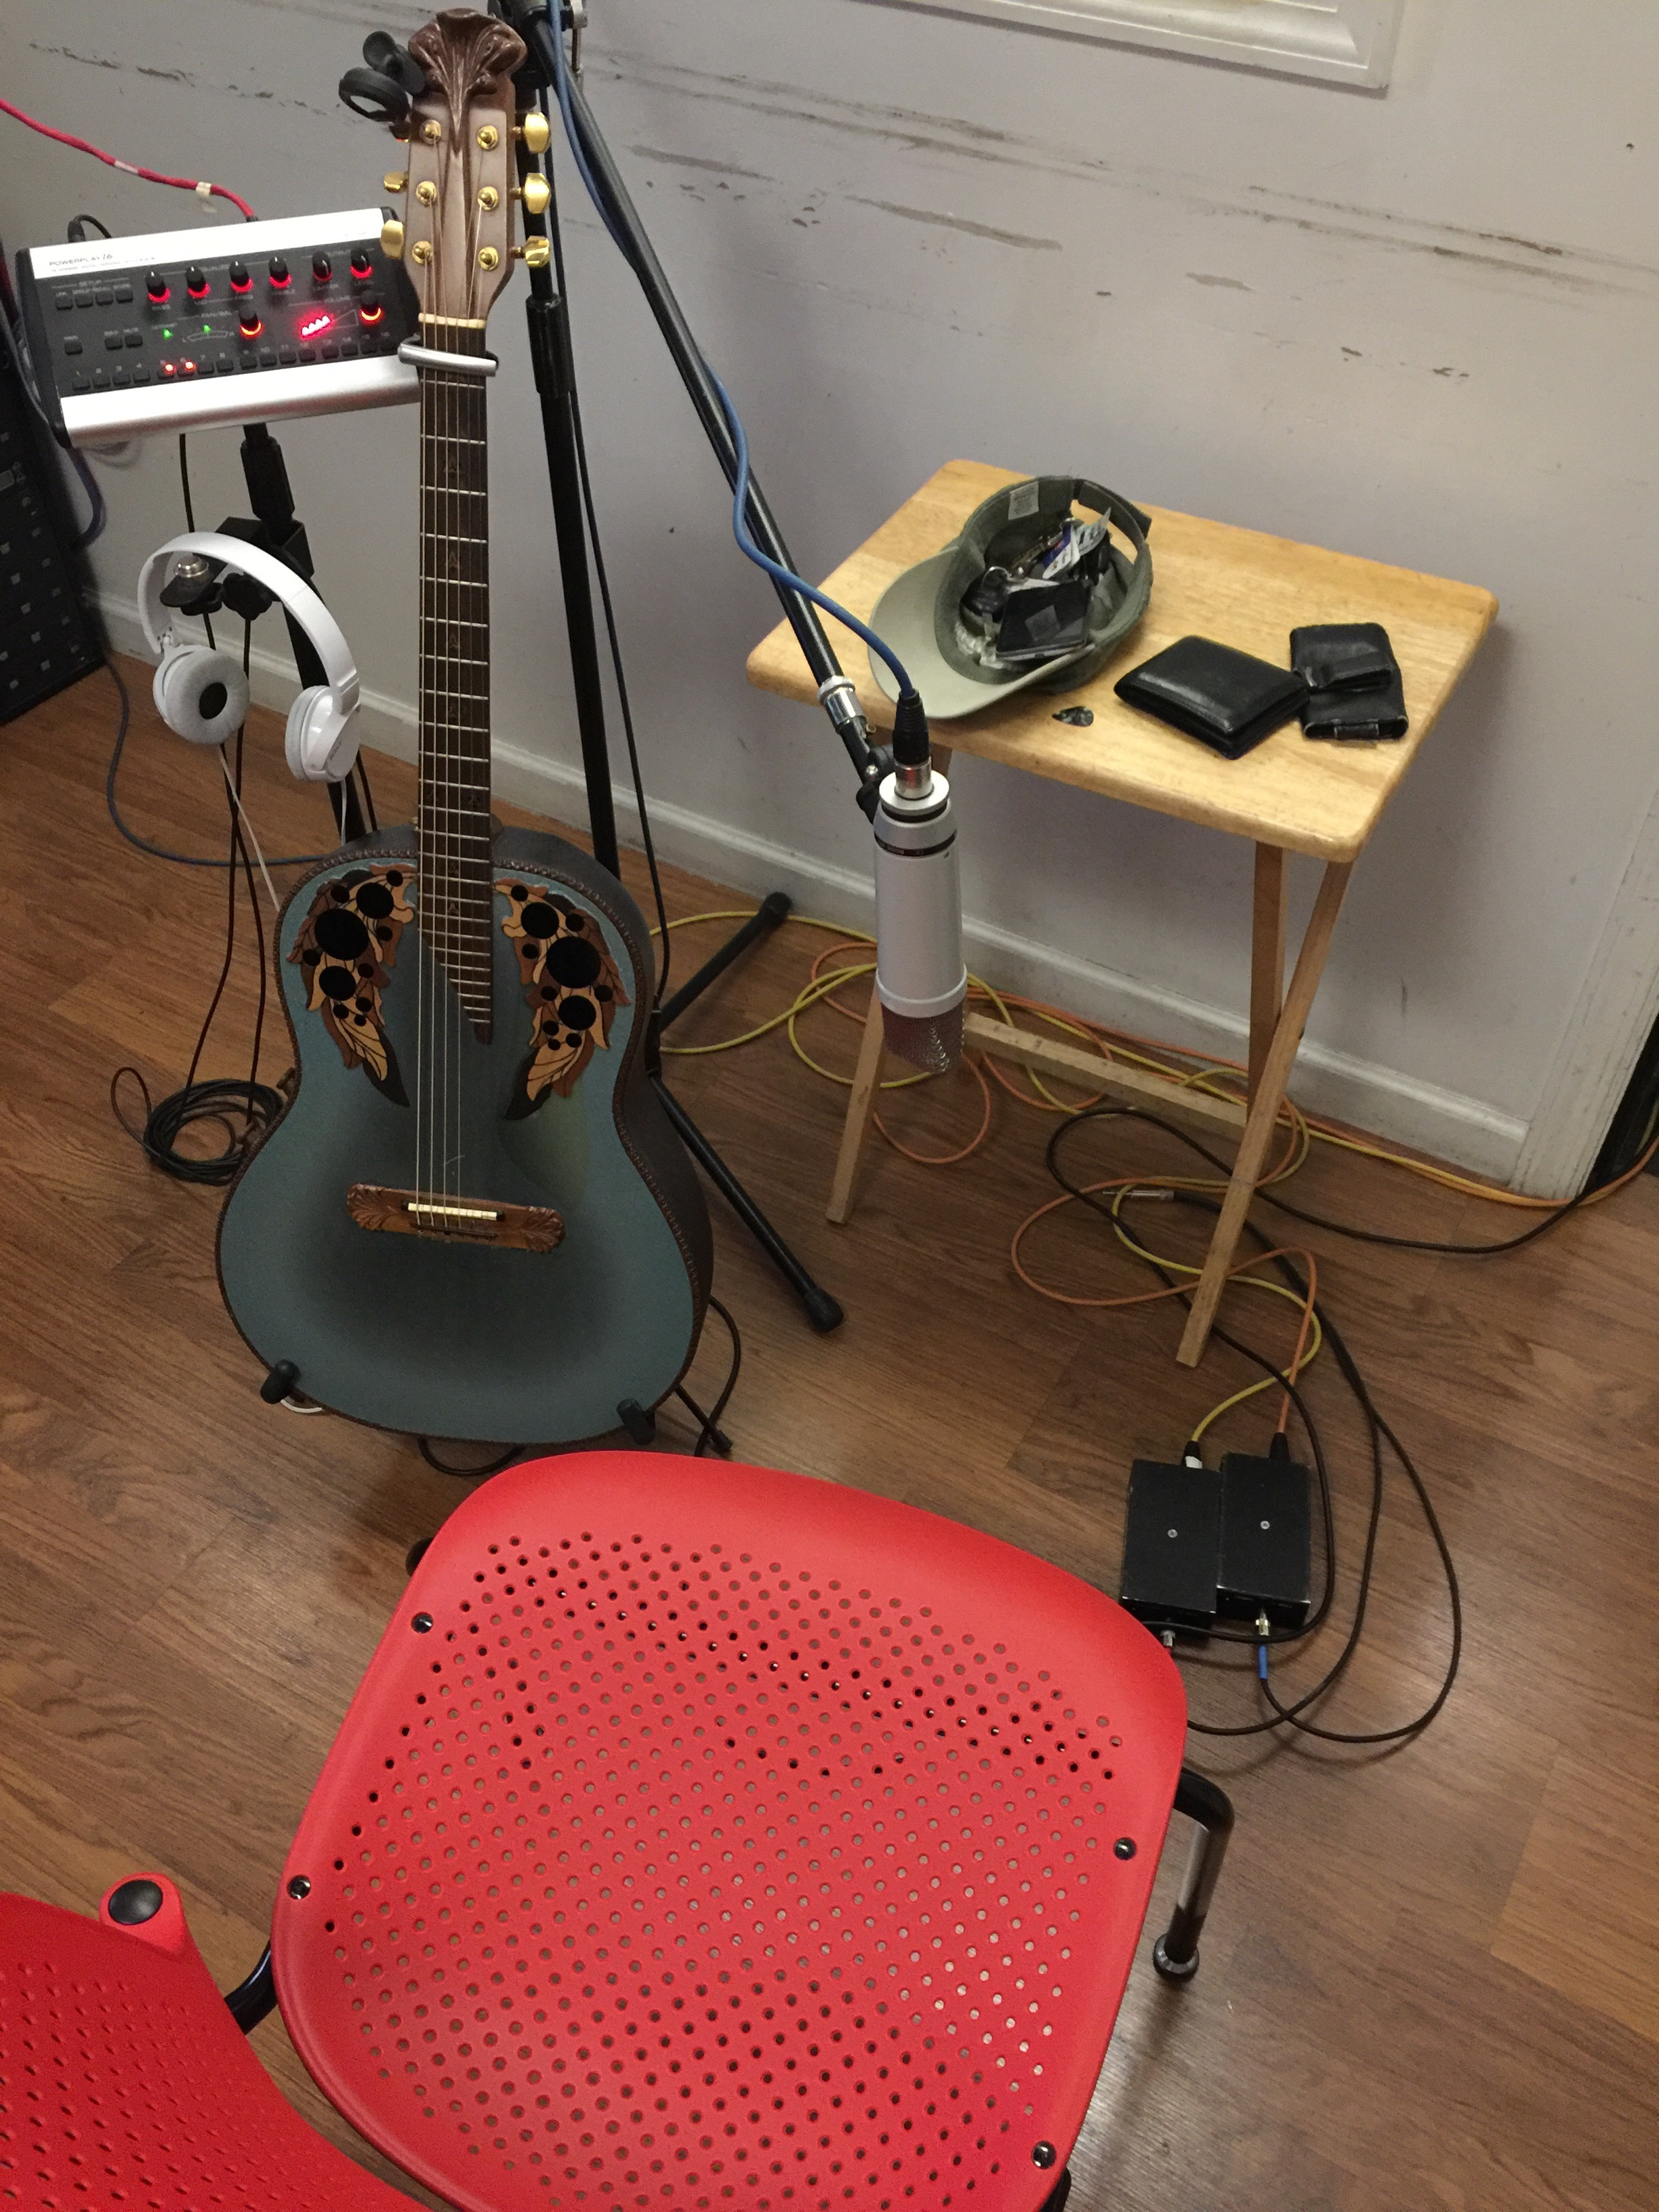 On 7/1/16 we recorded ElectroAcoustic Guitar, VoiceOver, and then mixed songs.